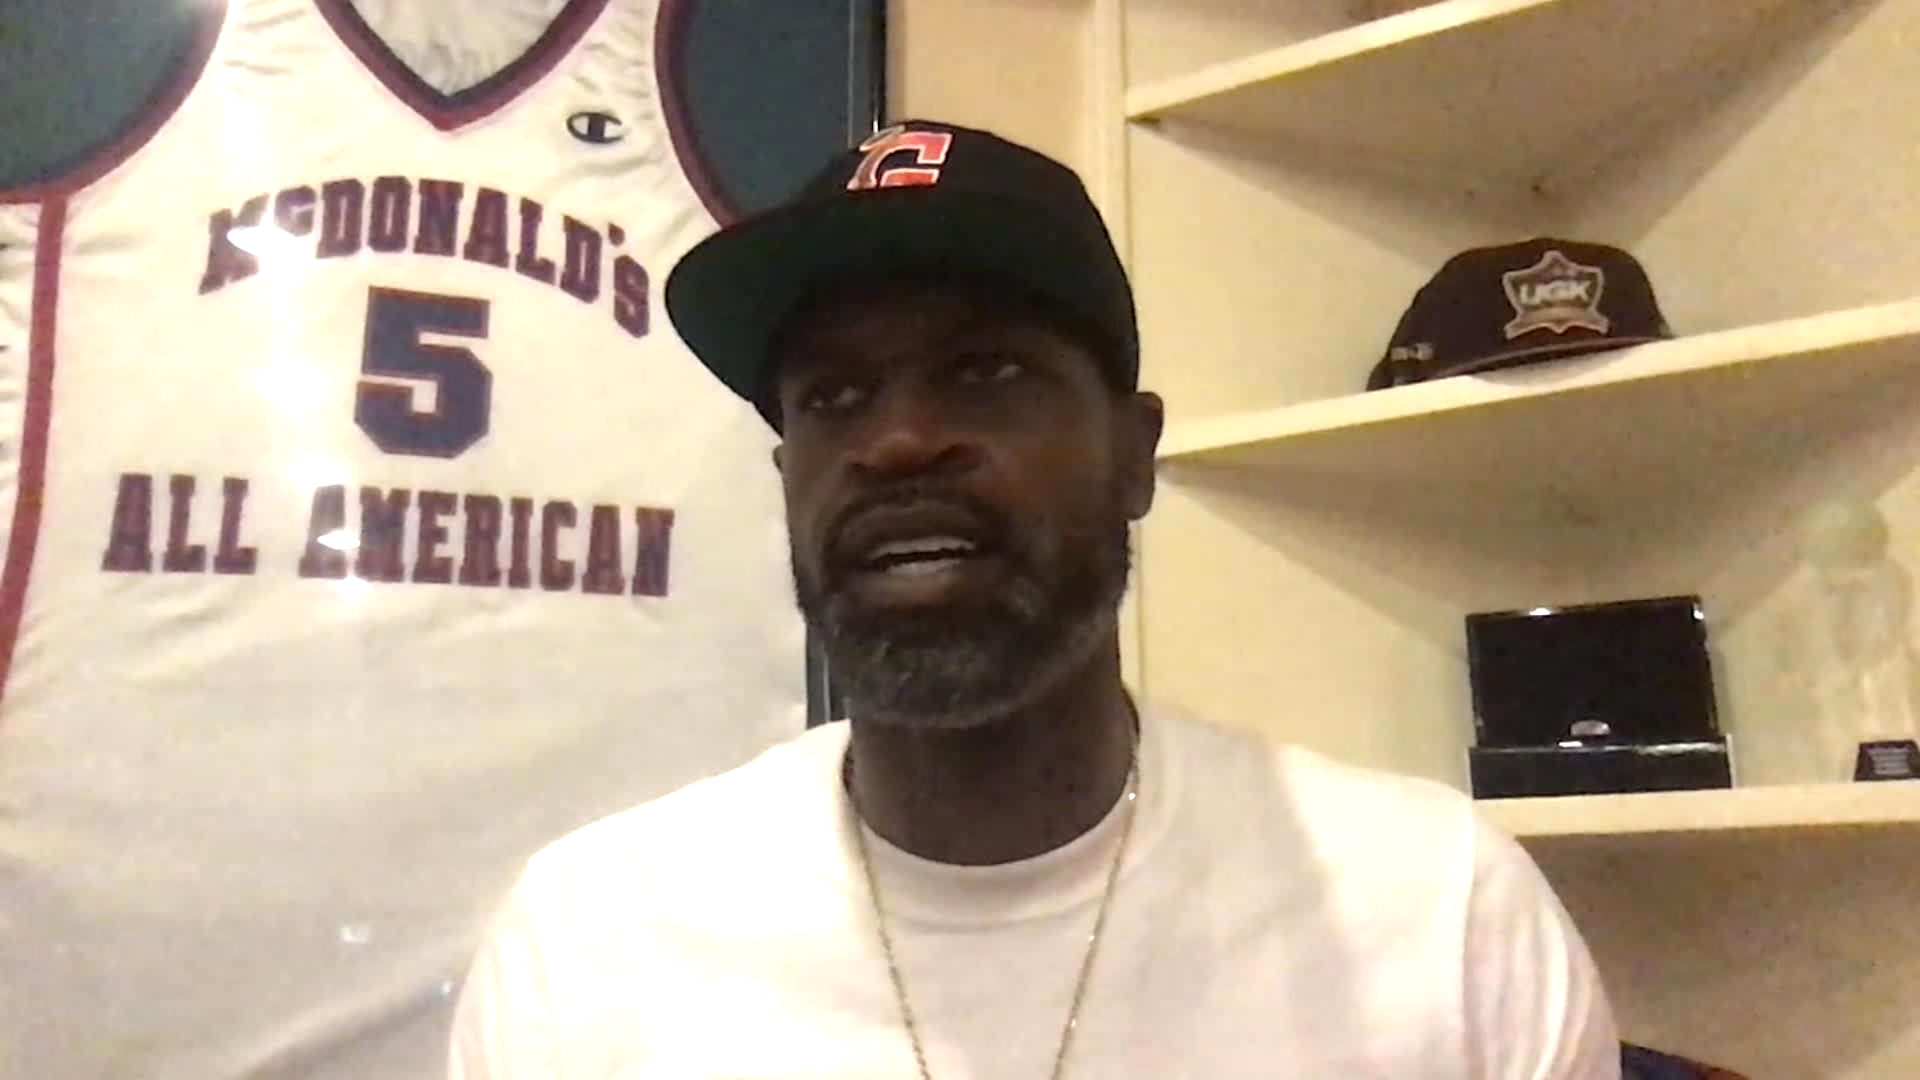 Ex-NBA star Stephen Jackson says remarks about DeSean Jackson were twisted, but apologizes